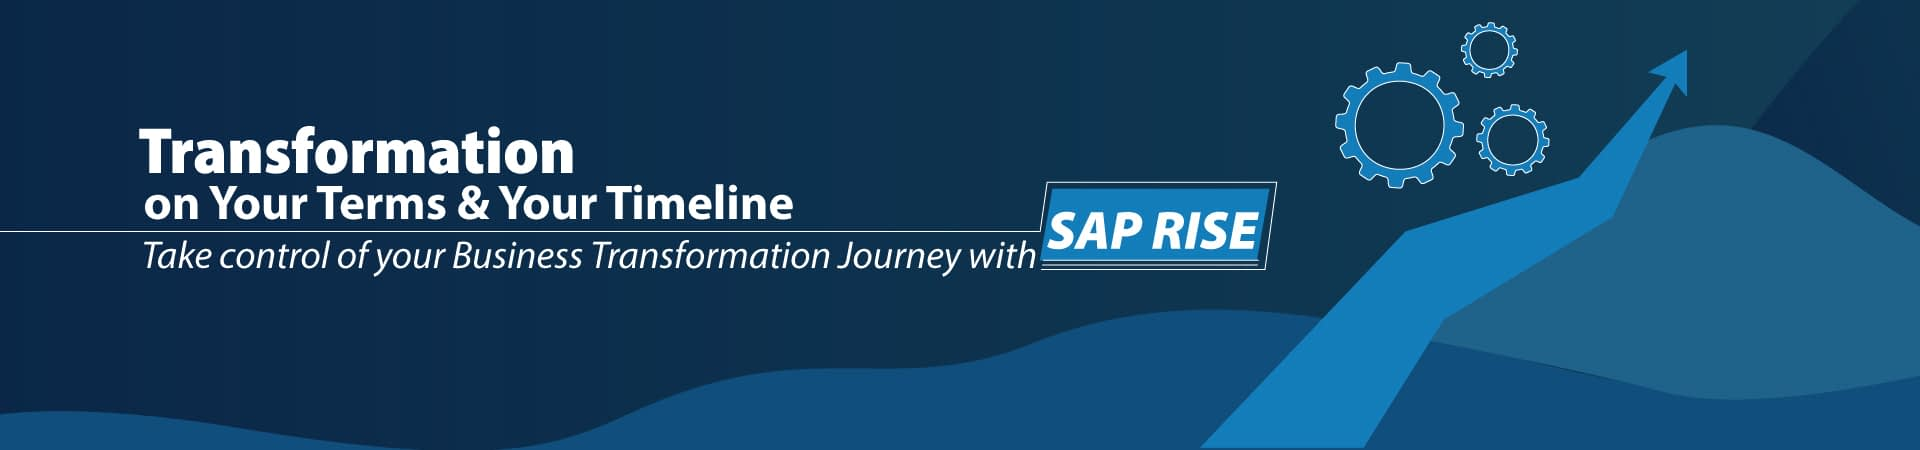 SAP Rise Home page banner